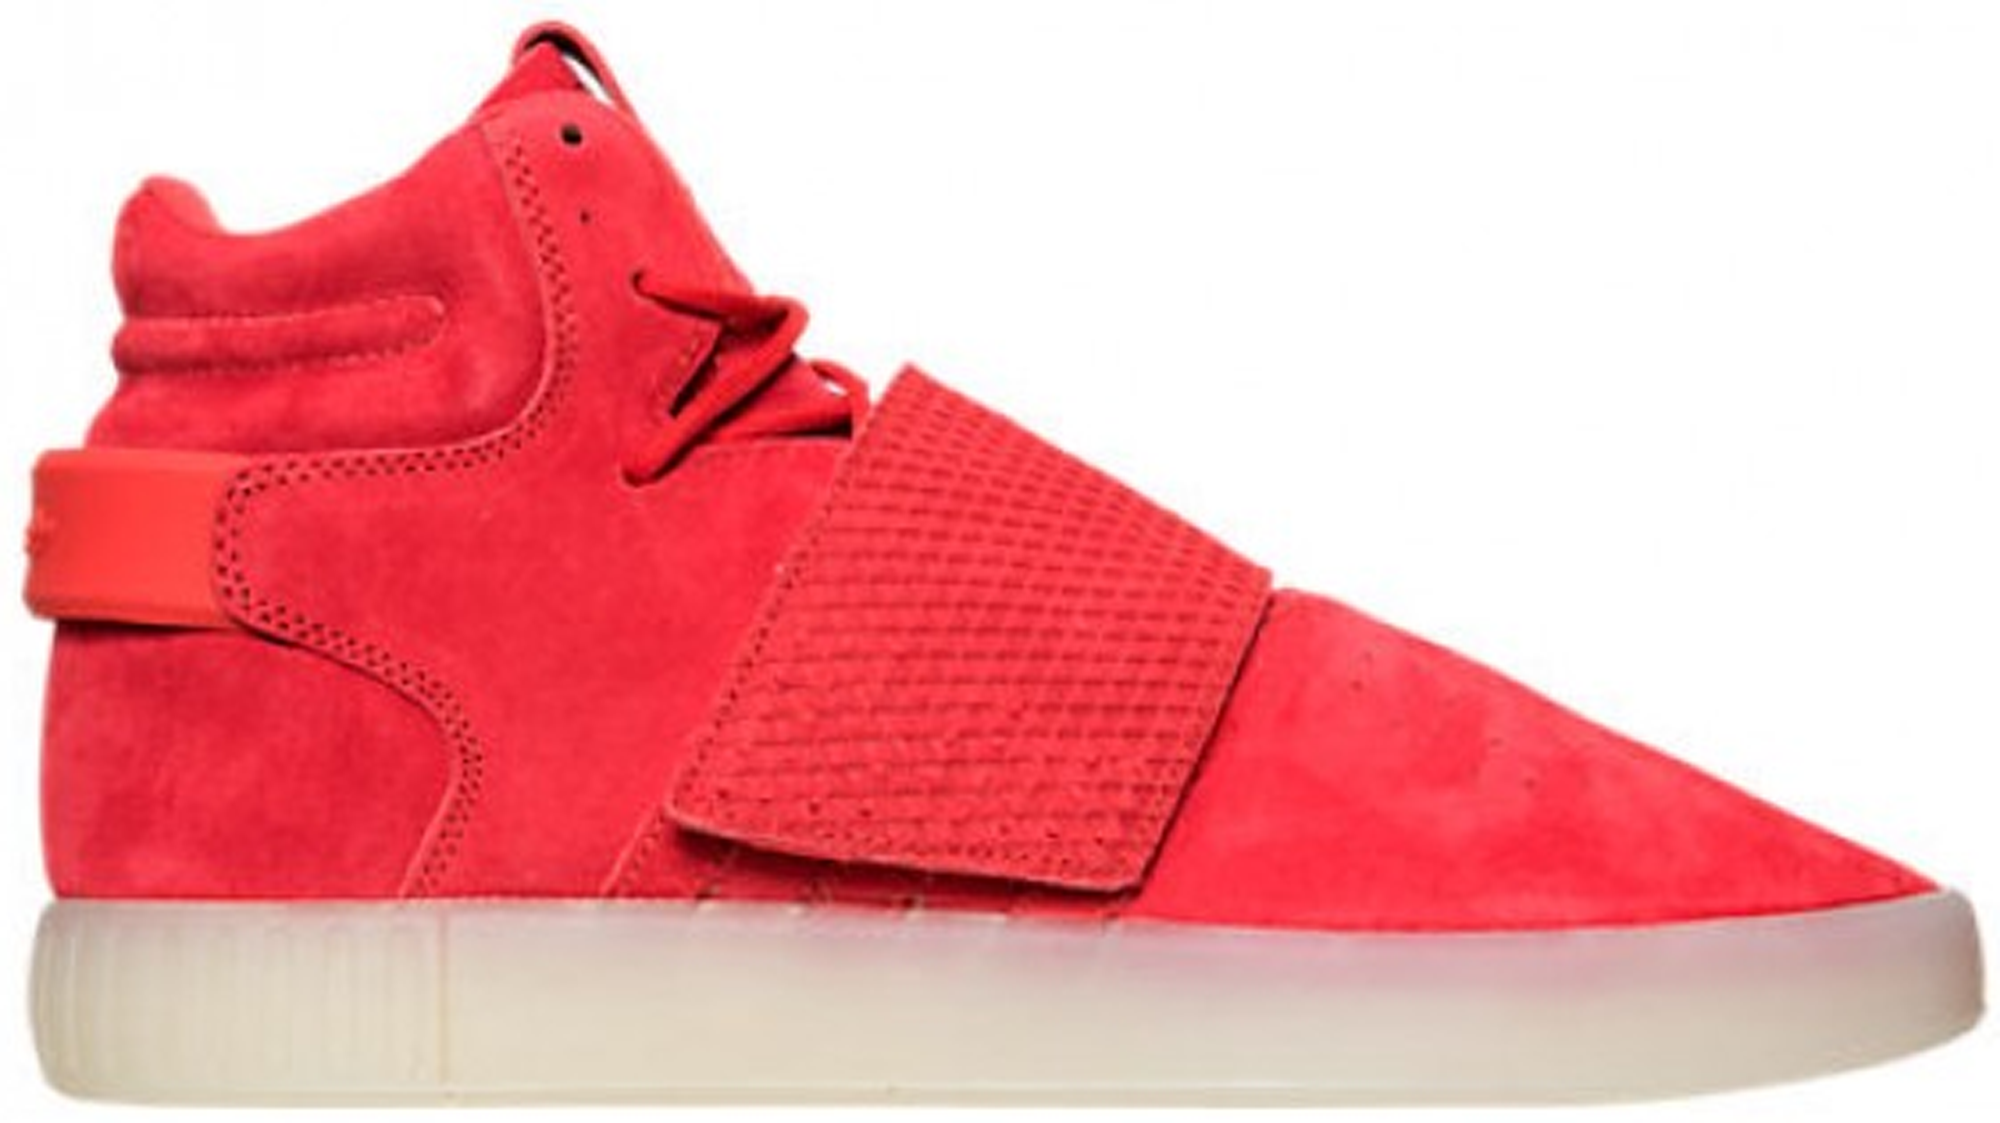 adidas Tubular Invader Strap Red - BB5039